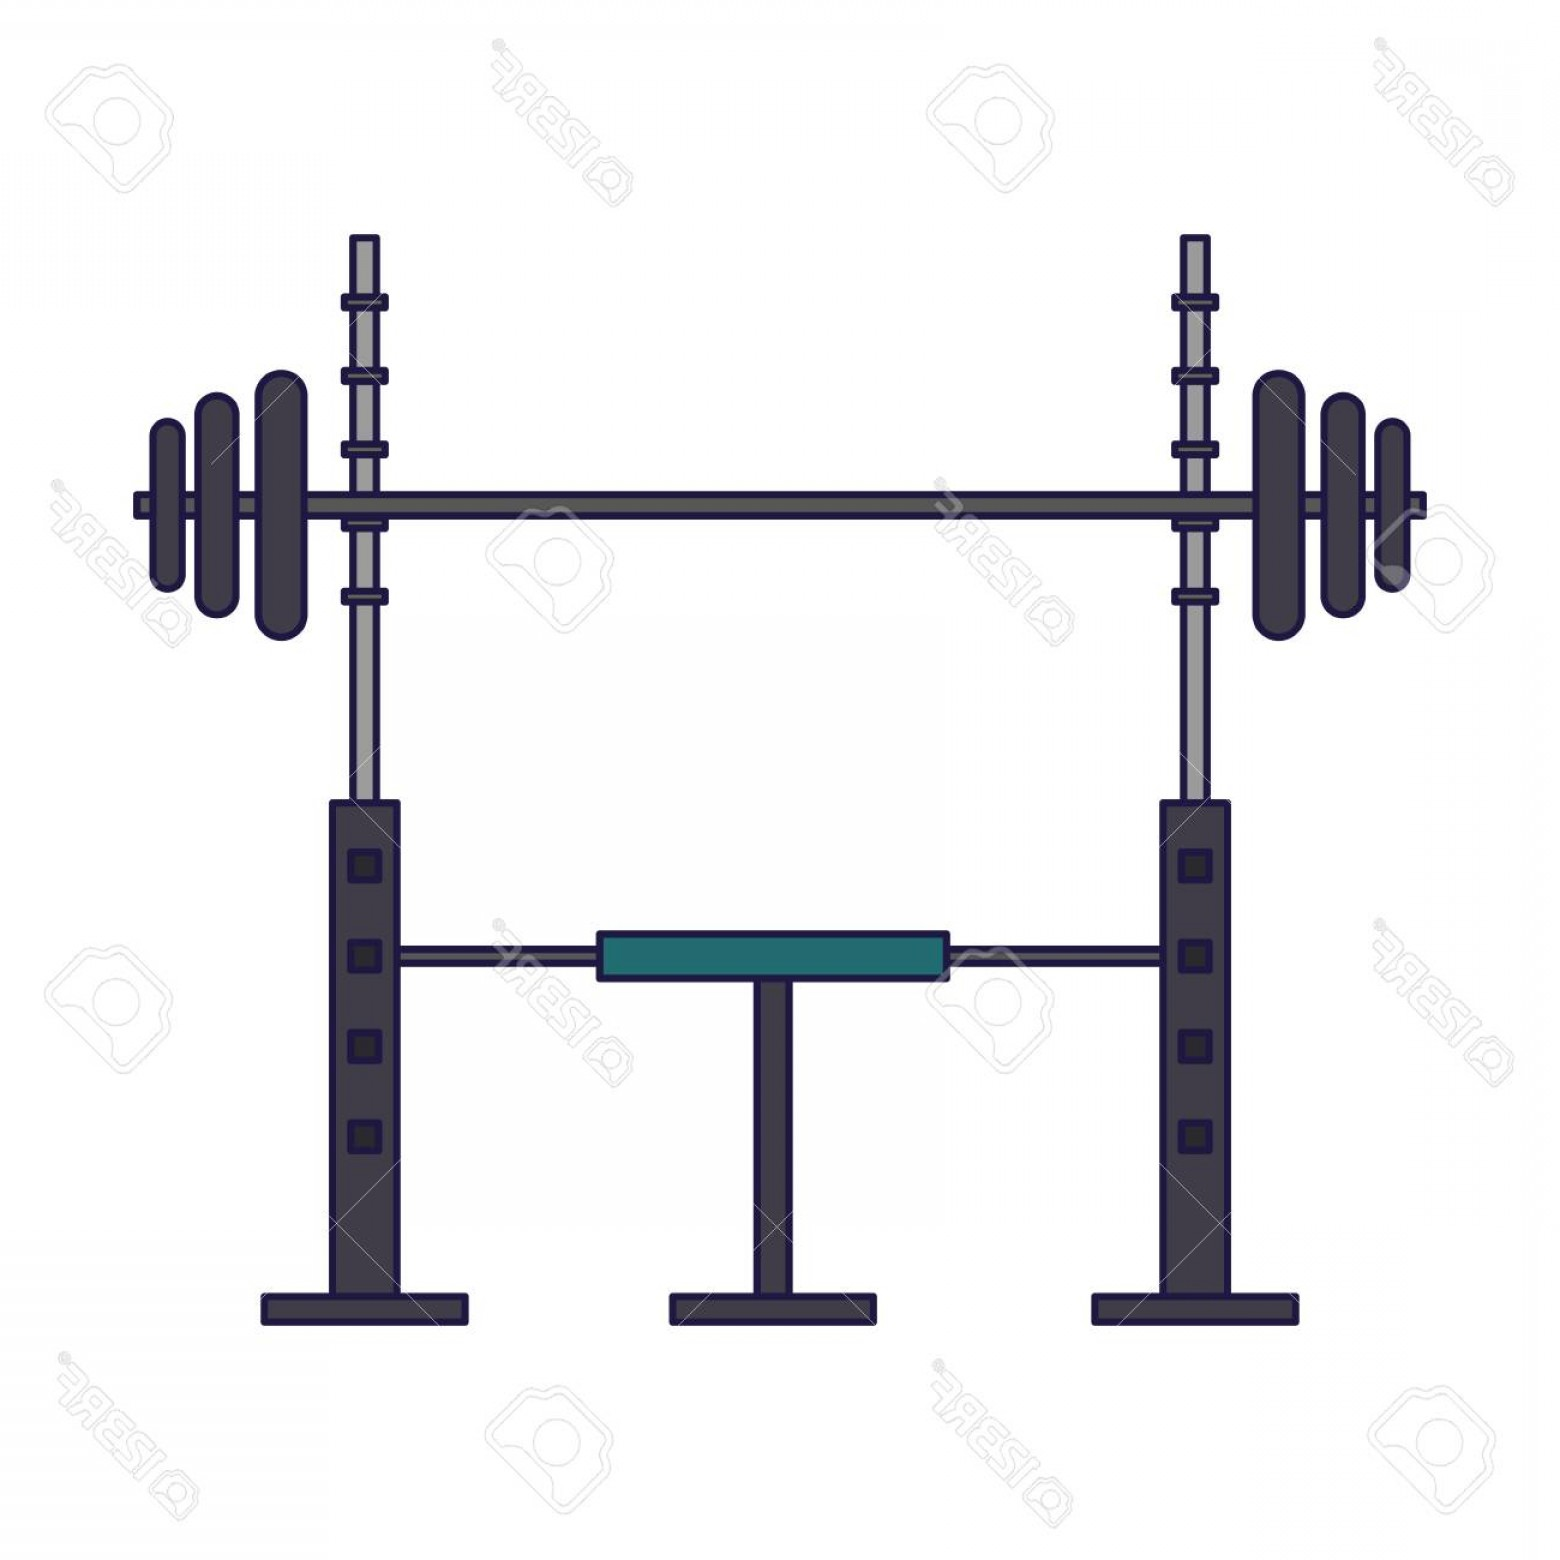 Weight Lifting Vector Graphics: Photostock Vector Gym Chest Weight Lifting Vector Illustration Graphic Design